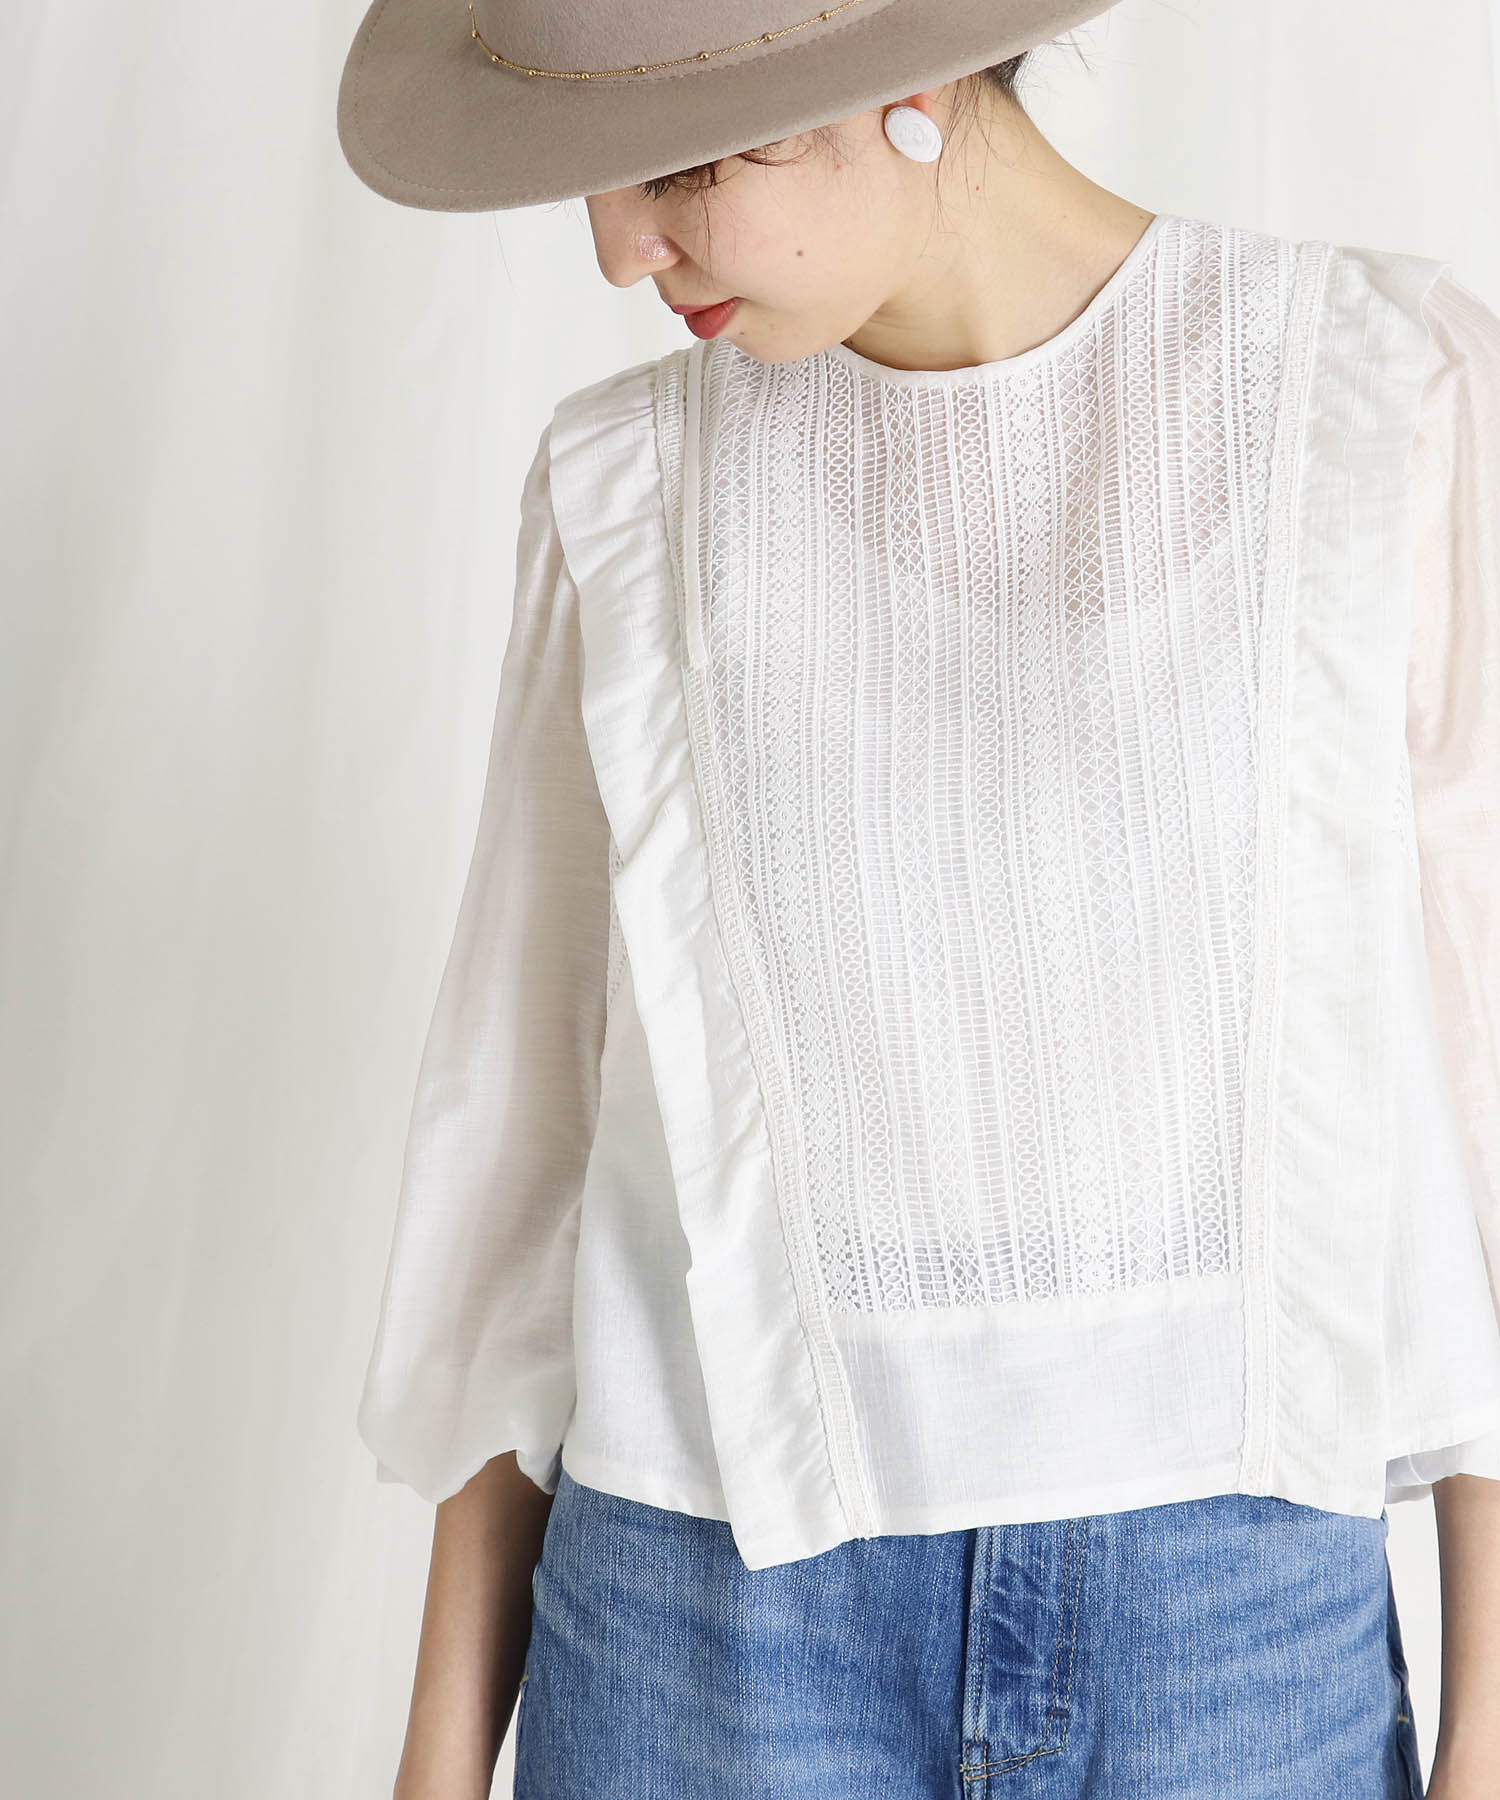 stripe lace×rayon silk blouse